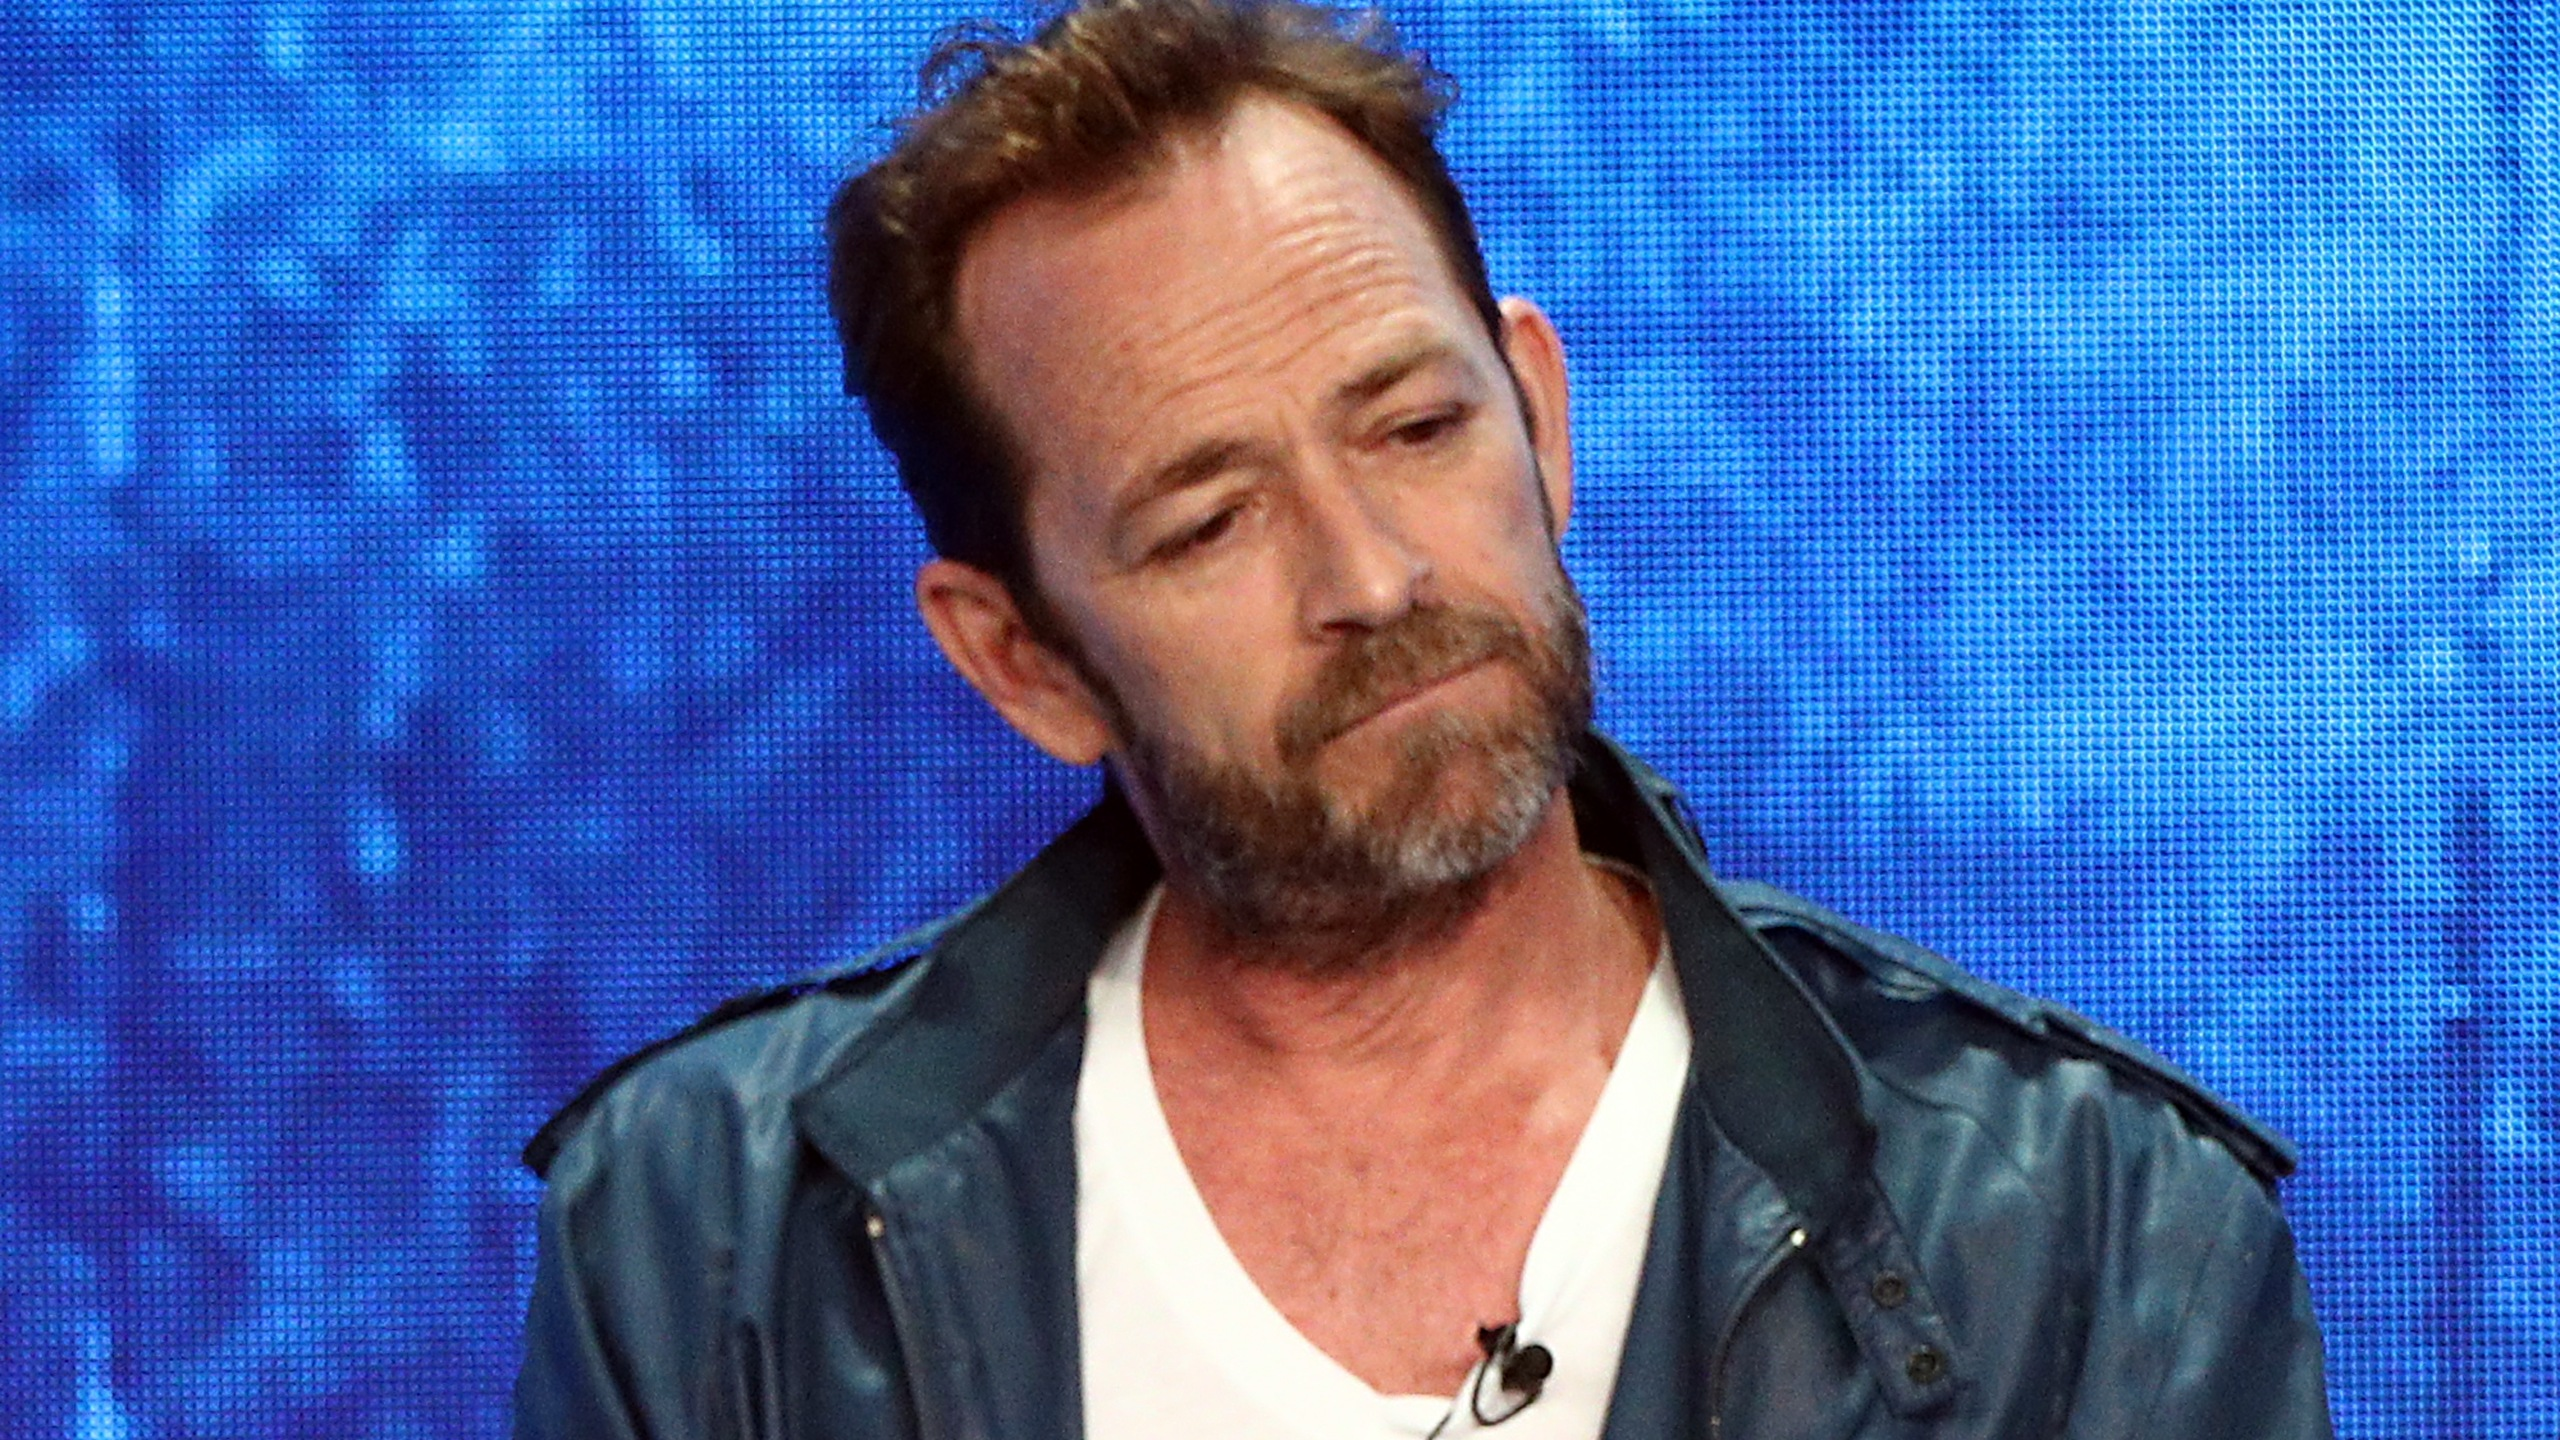 Luke Perry from 'Riverdale' speaks onstage at the CW Network portion of the Summer 2018 TCA Press Tour at The Beverly Hilton Hotel on August 6, 2018 in Beverly Hills, California. (Credit: Frederick M. Brown/Getty Images)